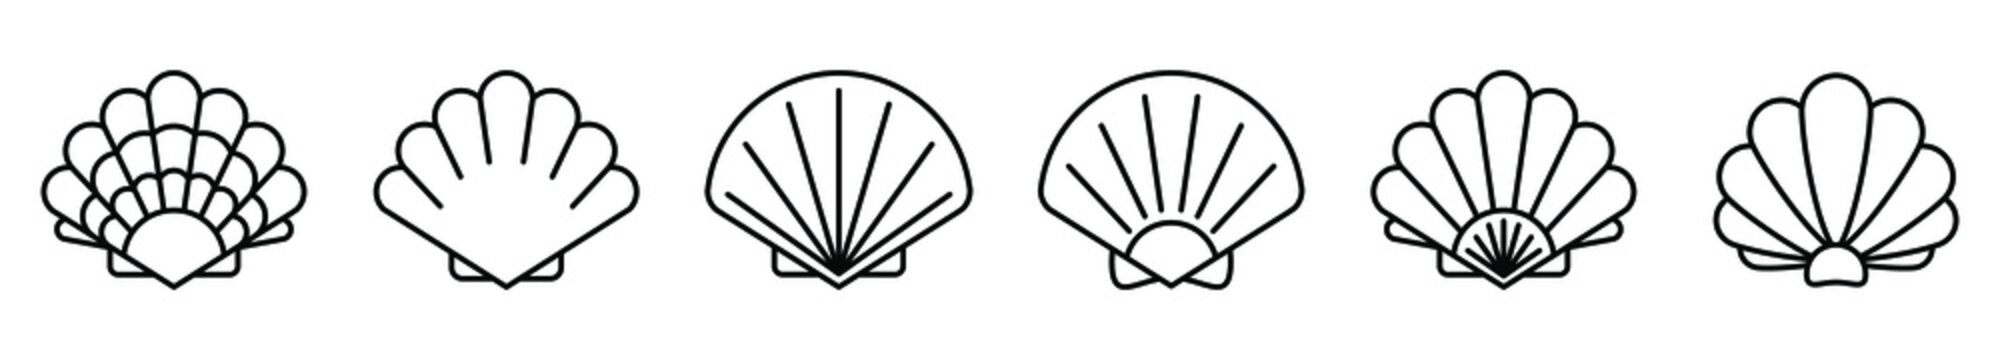 Sea shell icon. Set of linear pearl shell icons. Vector illustration. Shell vector icons. Black linear sea shell icons